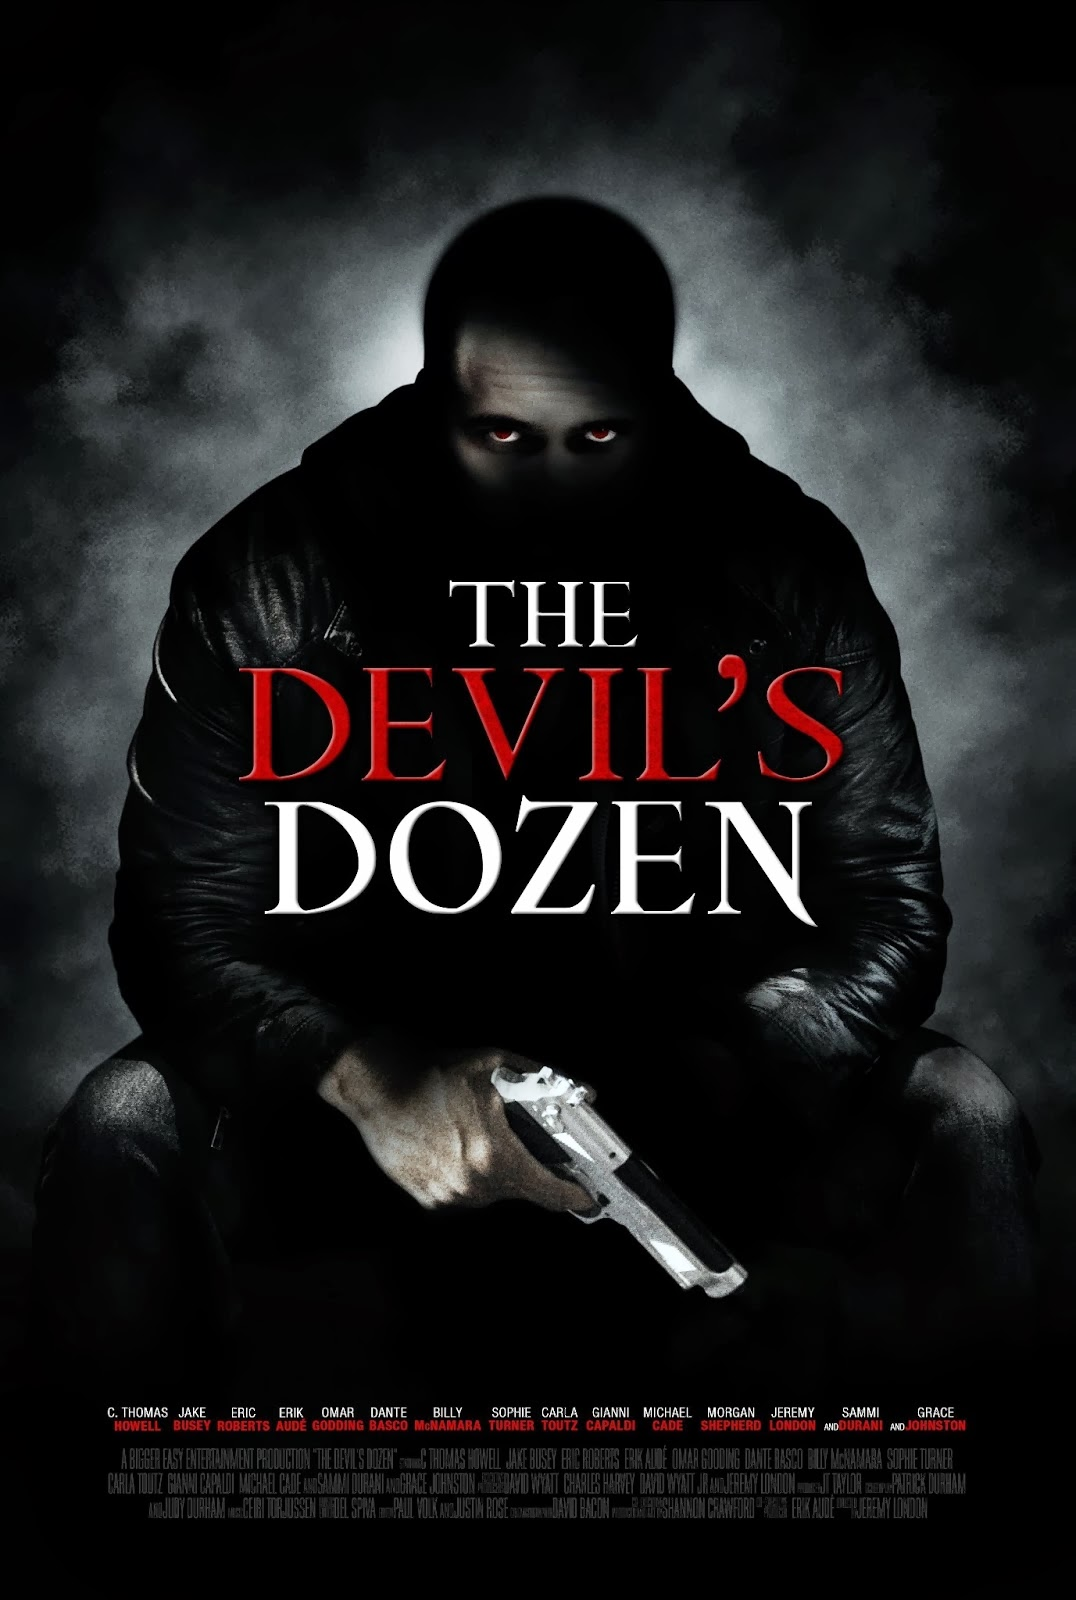 http://www.mazika4way.com/2013/11/The-Devils-Dozen-2013.html